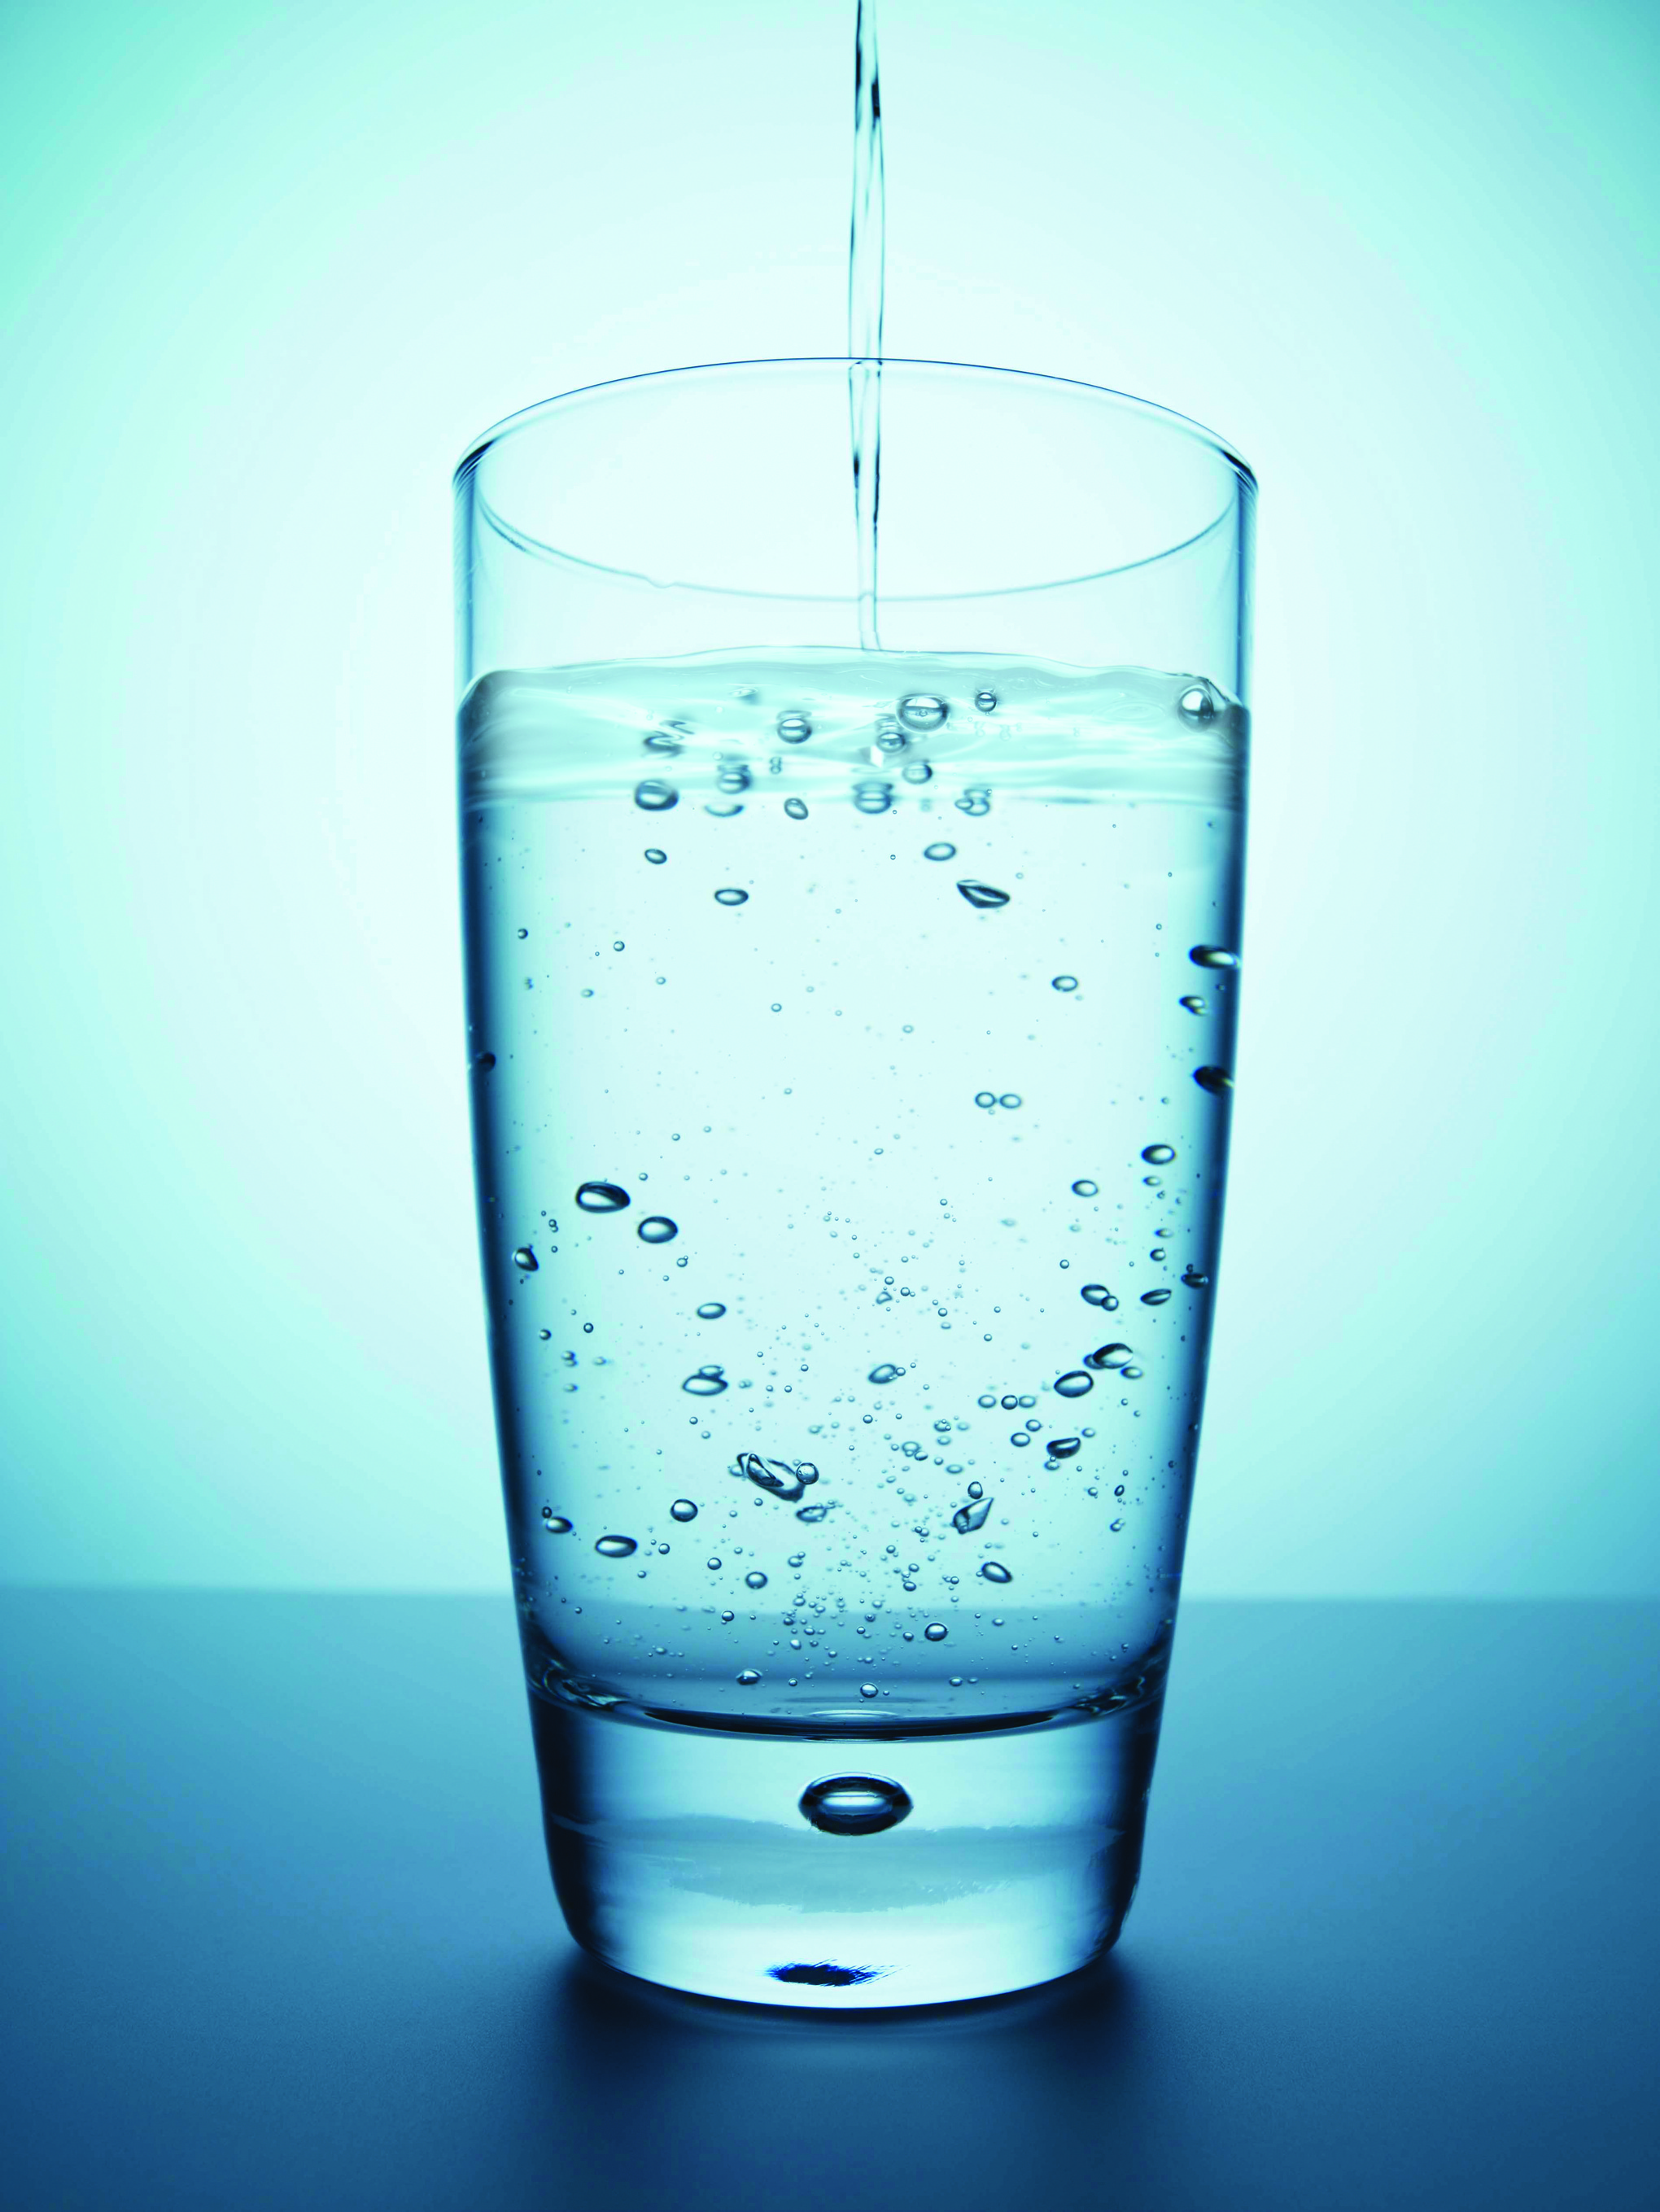 Is your well water safe to drink? Check test results in your town